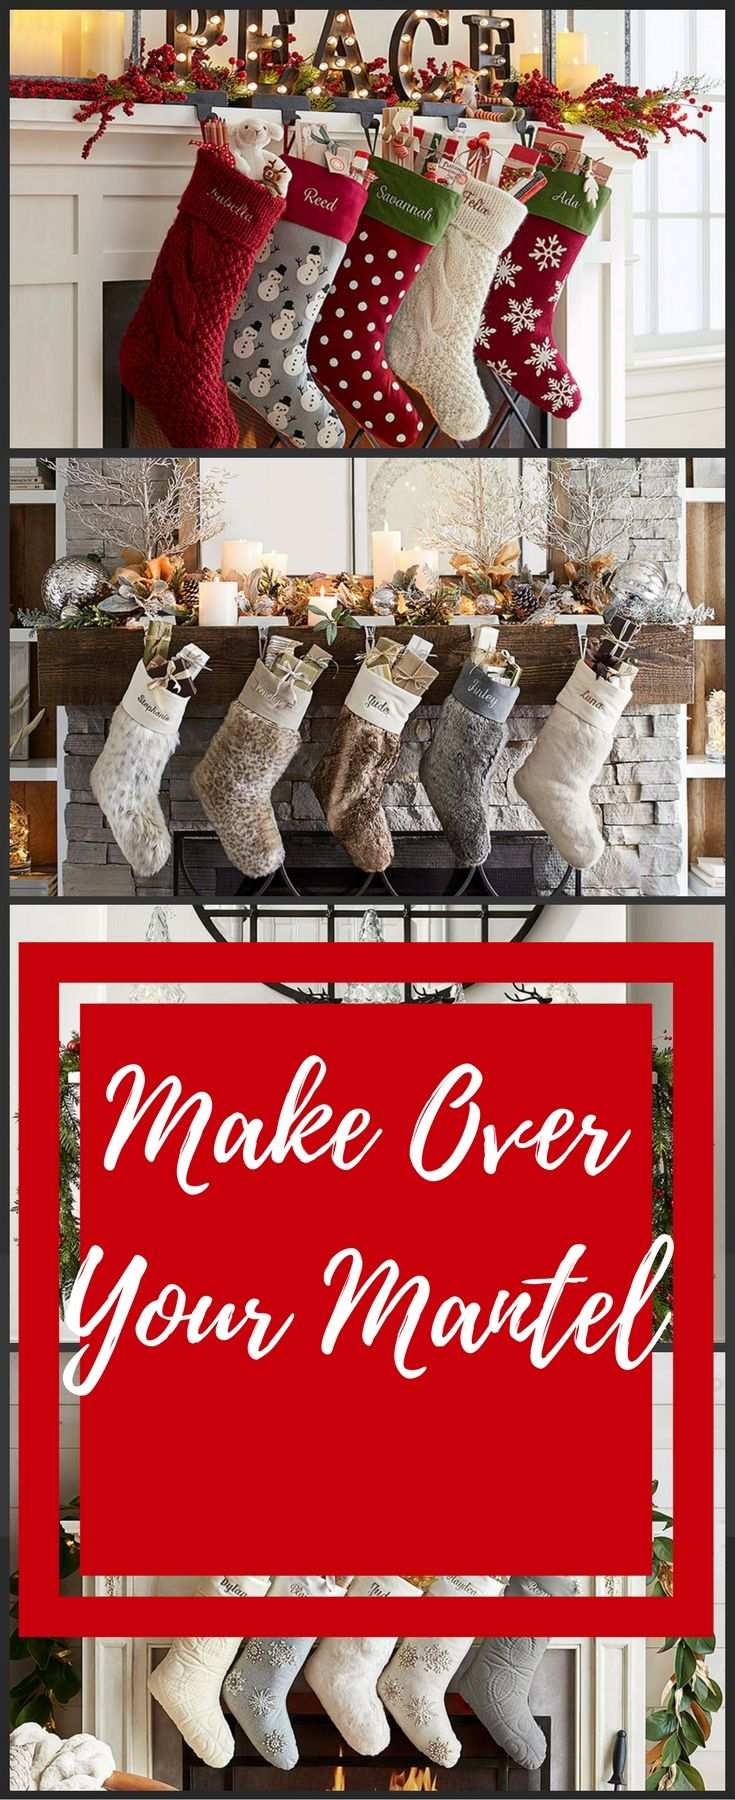 I love decorating my mantel at Christmas! Here are some great ideas! #christmasstockings #ad #ChristmasDecor